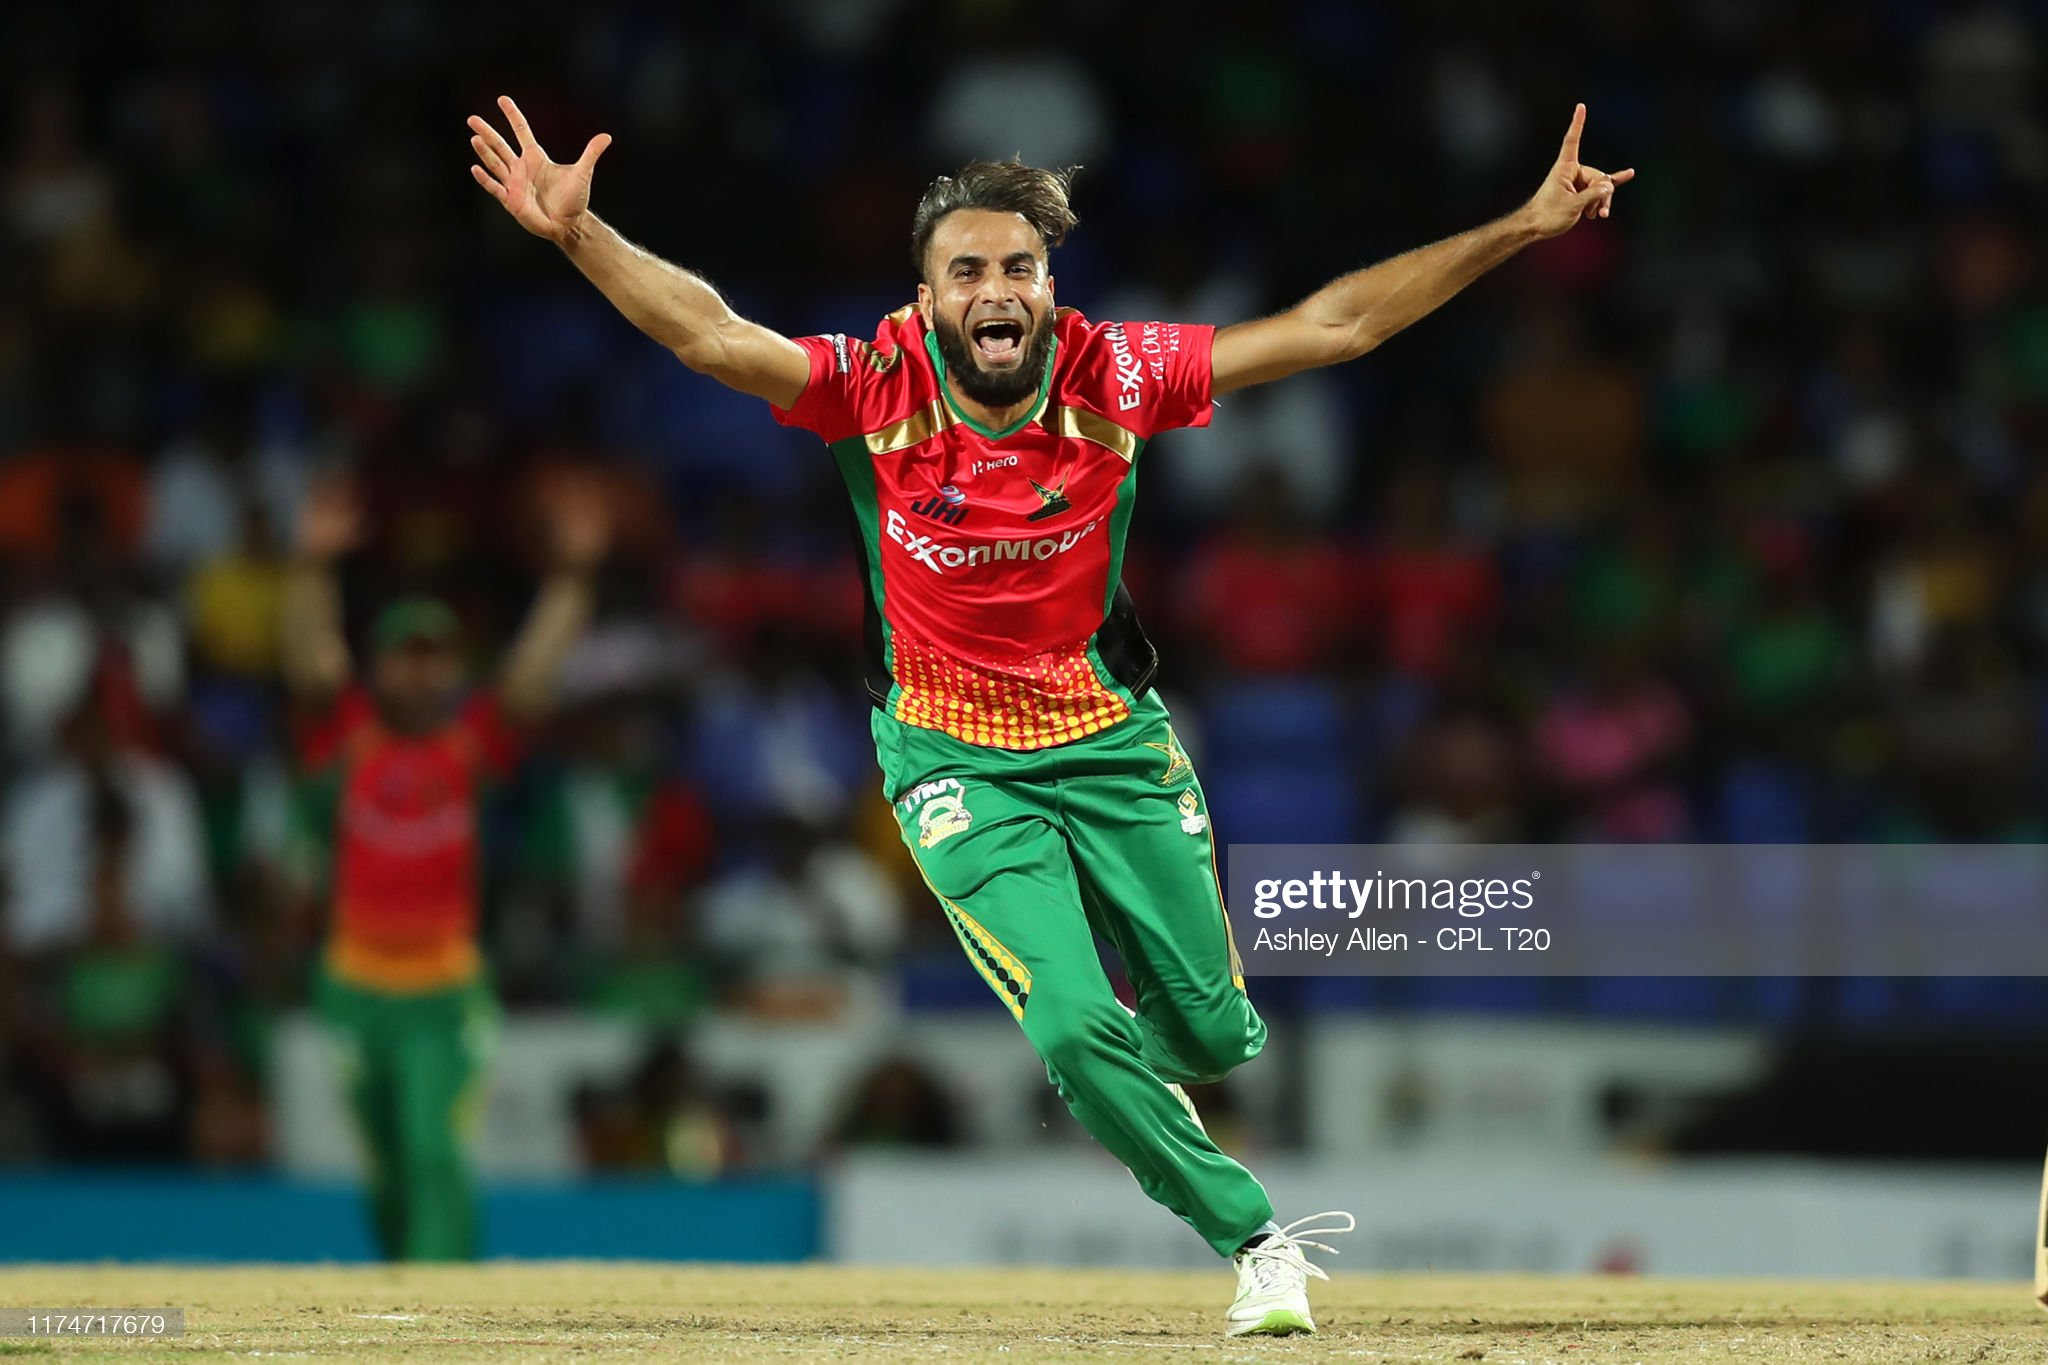 St Kitts Nevis Patriots v Guyana Amazon Warriors - 2019 Hero Caribbean Premier League (CPL) : News Photo